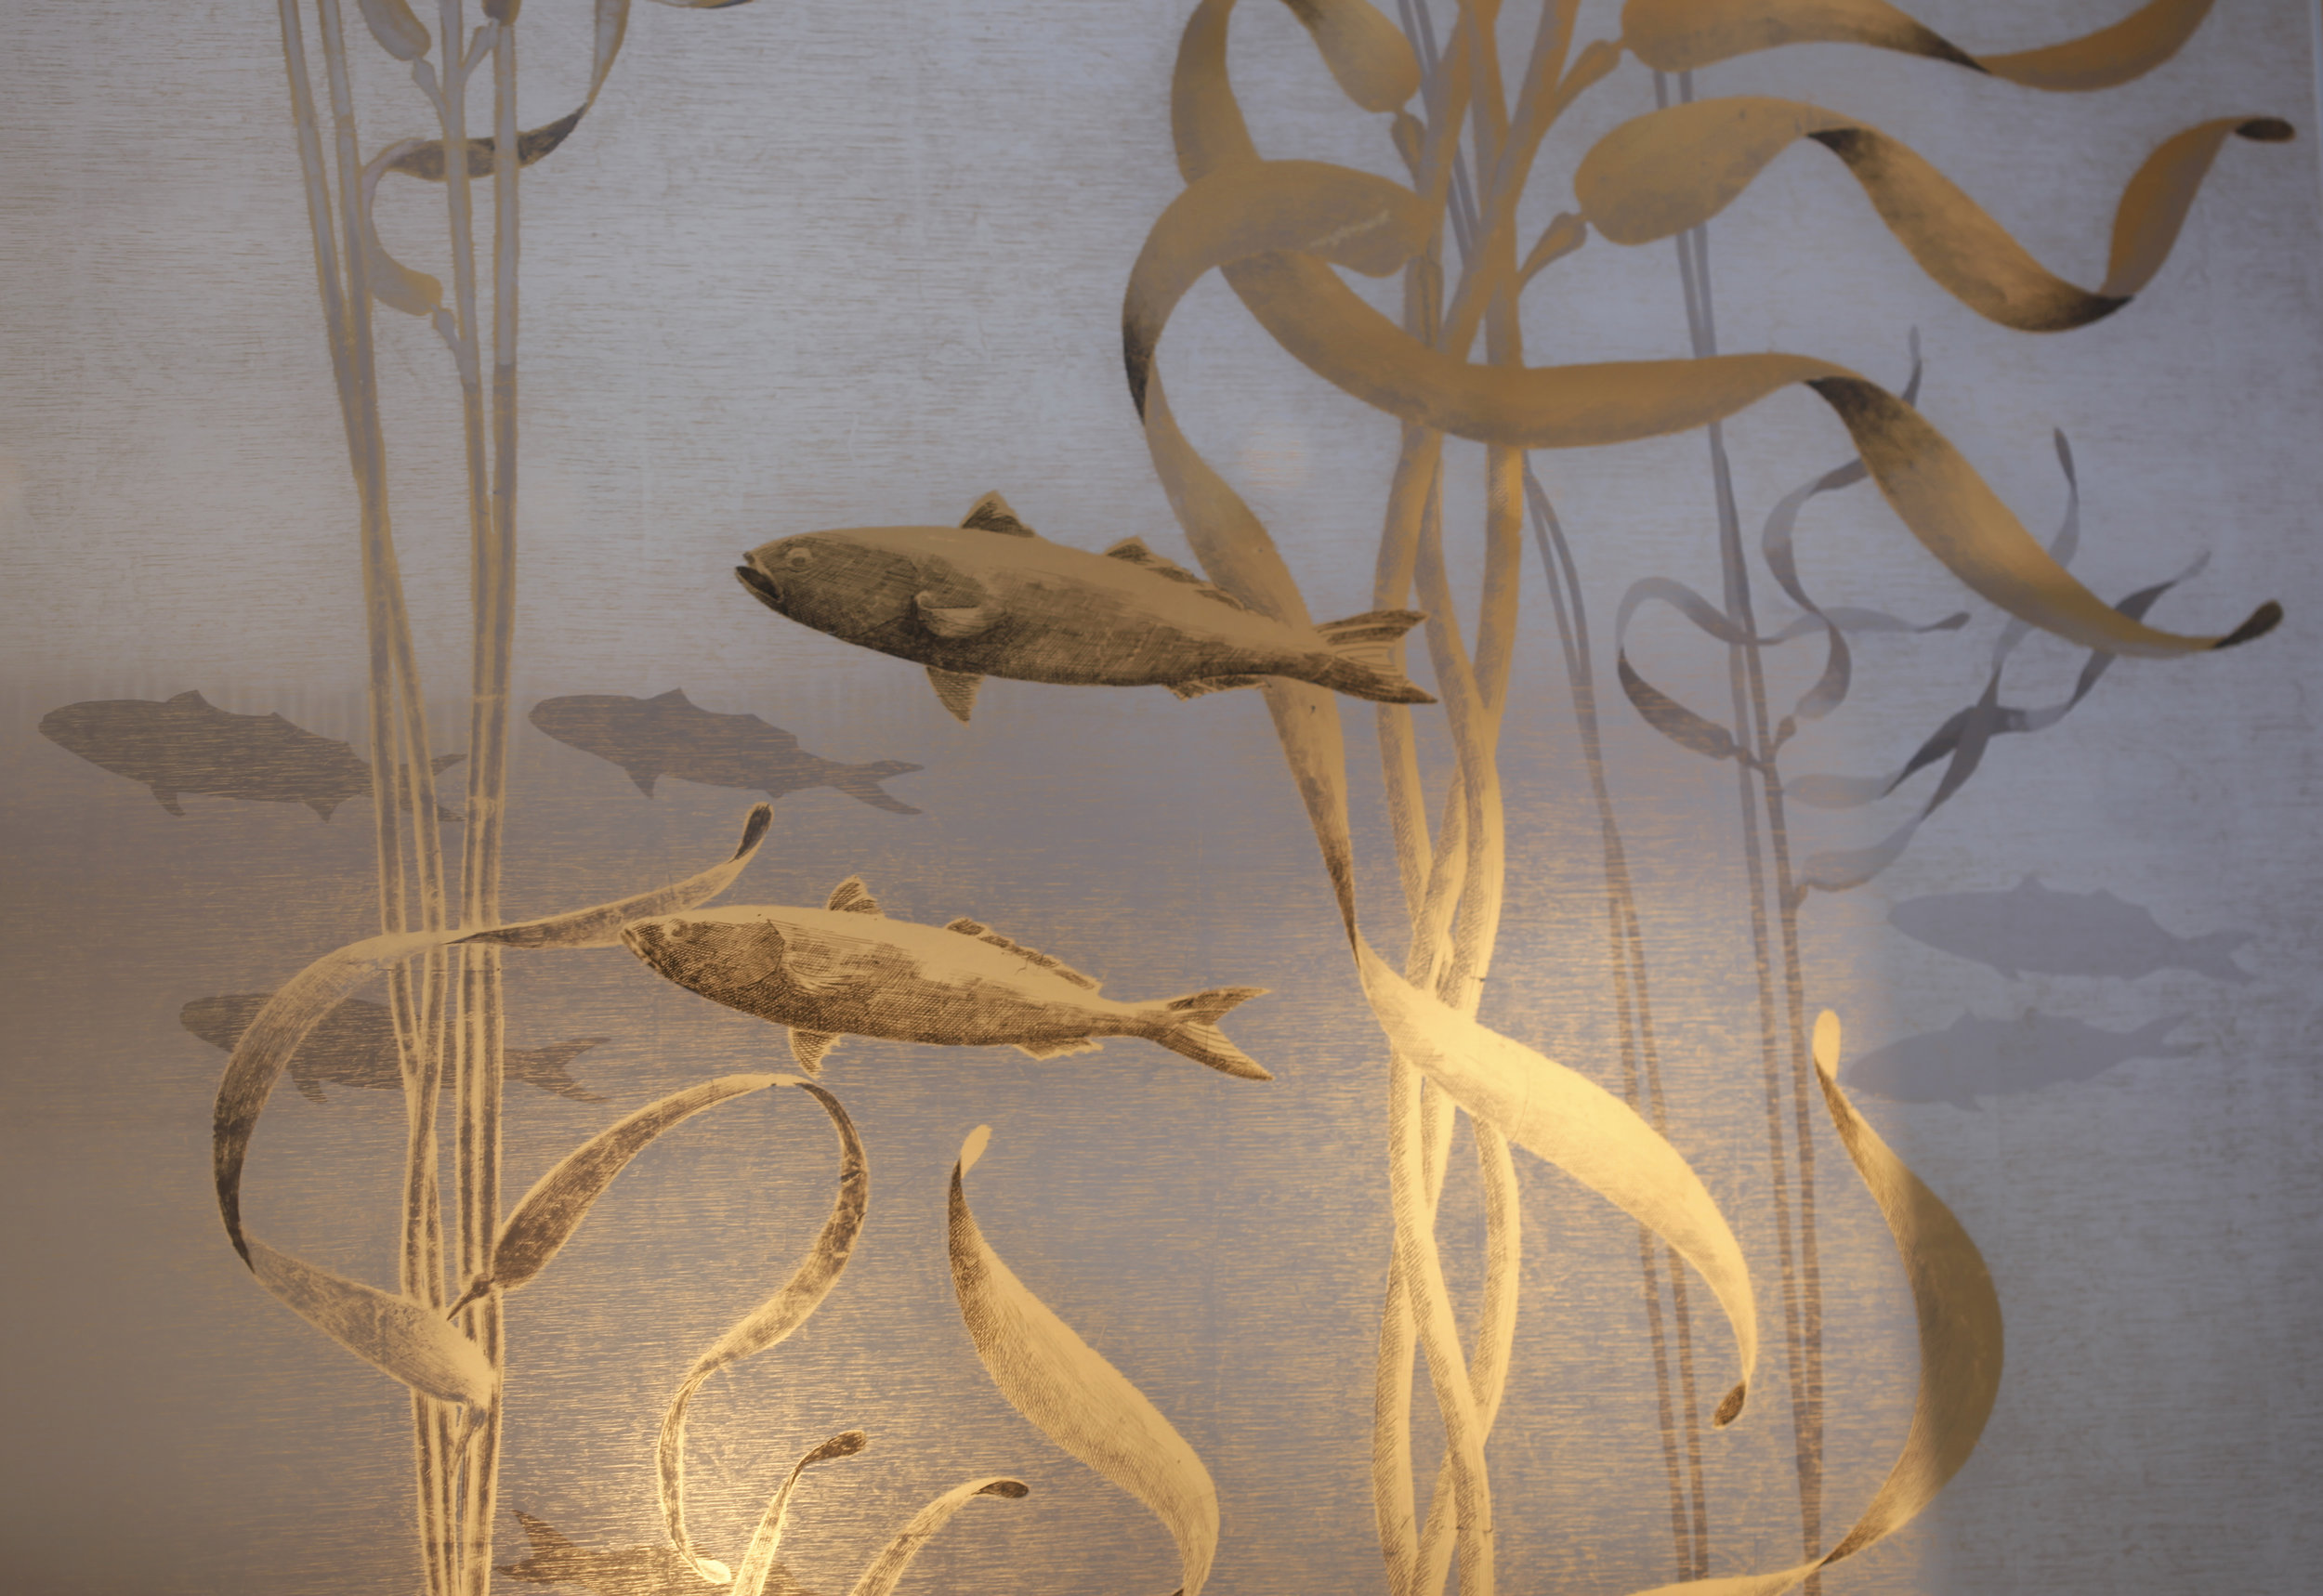 #2_SCHOOL OF FISH EGLOMISE GLASS MURAL_VILLAFRANCA STUDIO.jpg